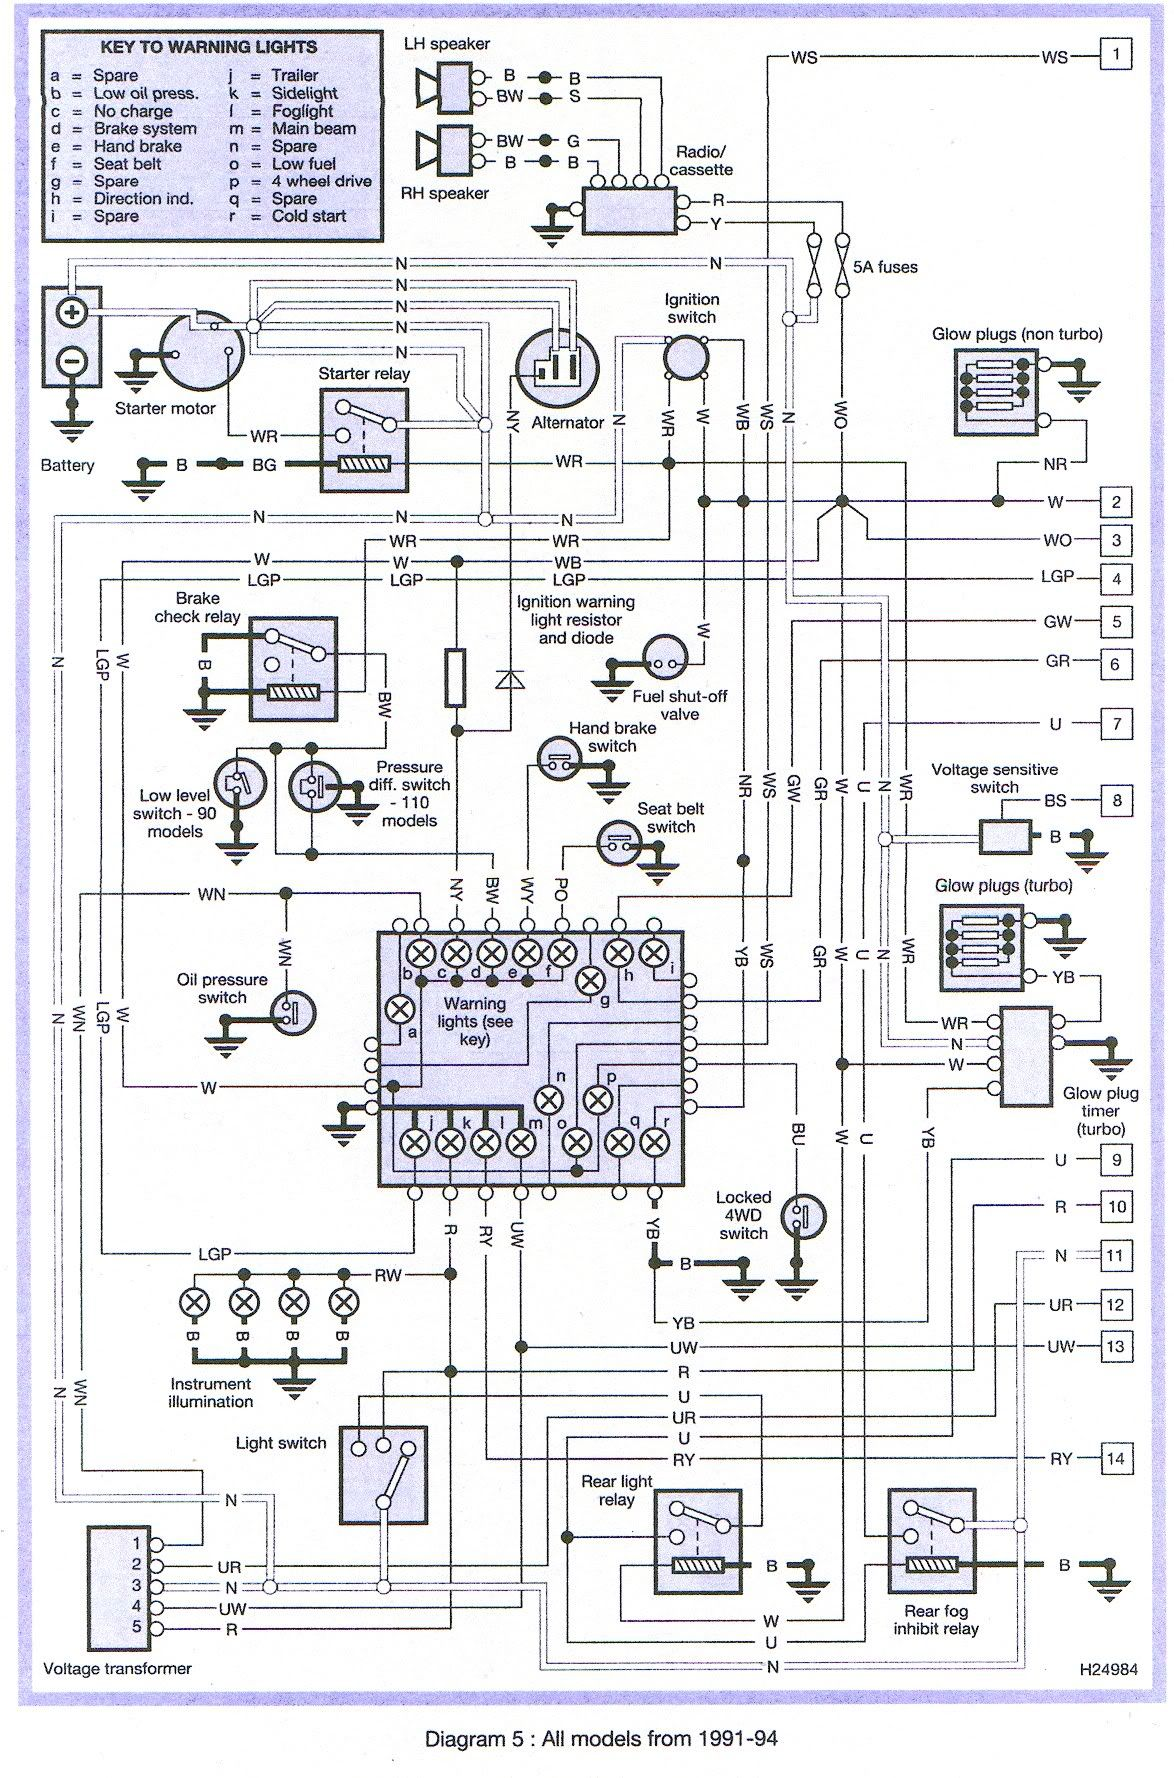 Land Rover Discovery Wiring Diagram | Manual Repair With Engine Schematics Land  Rover Discovery, Diagram